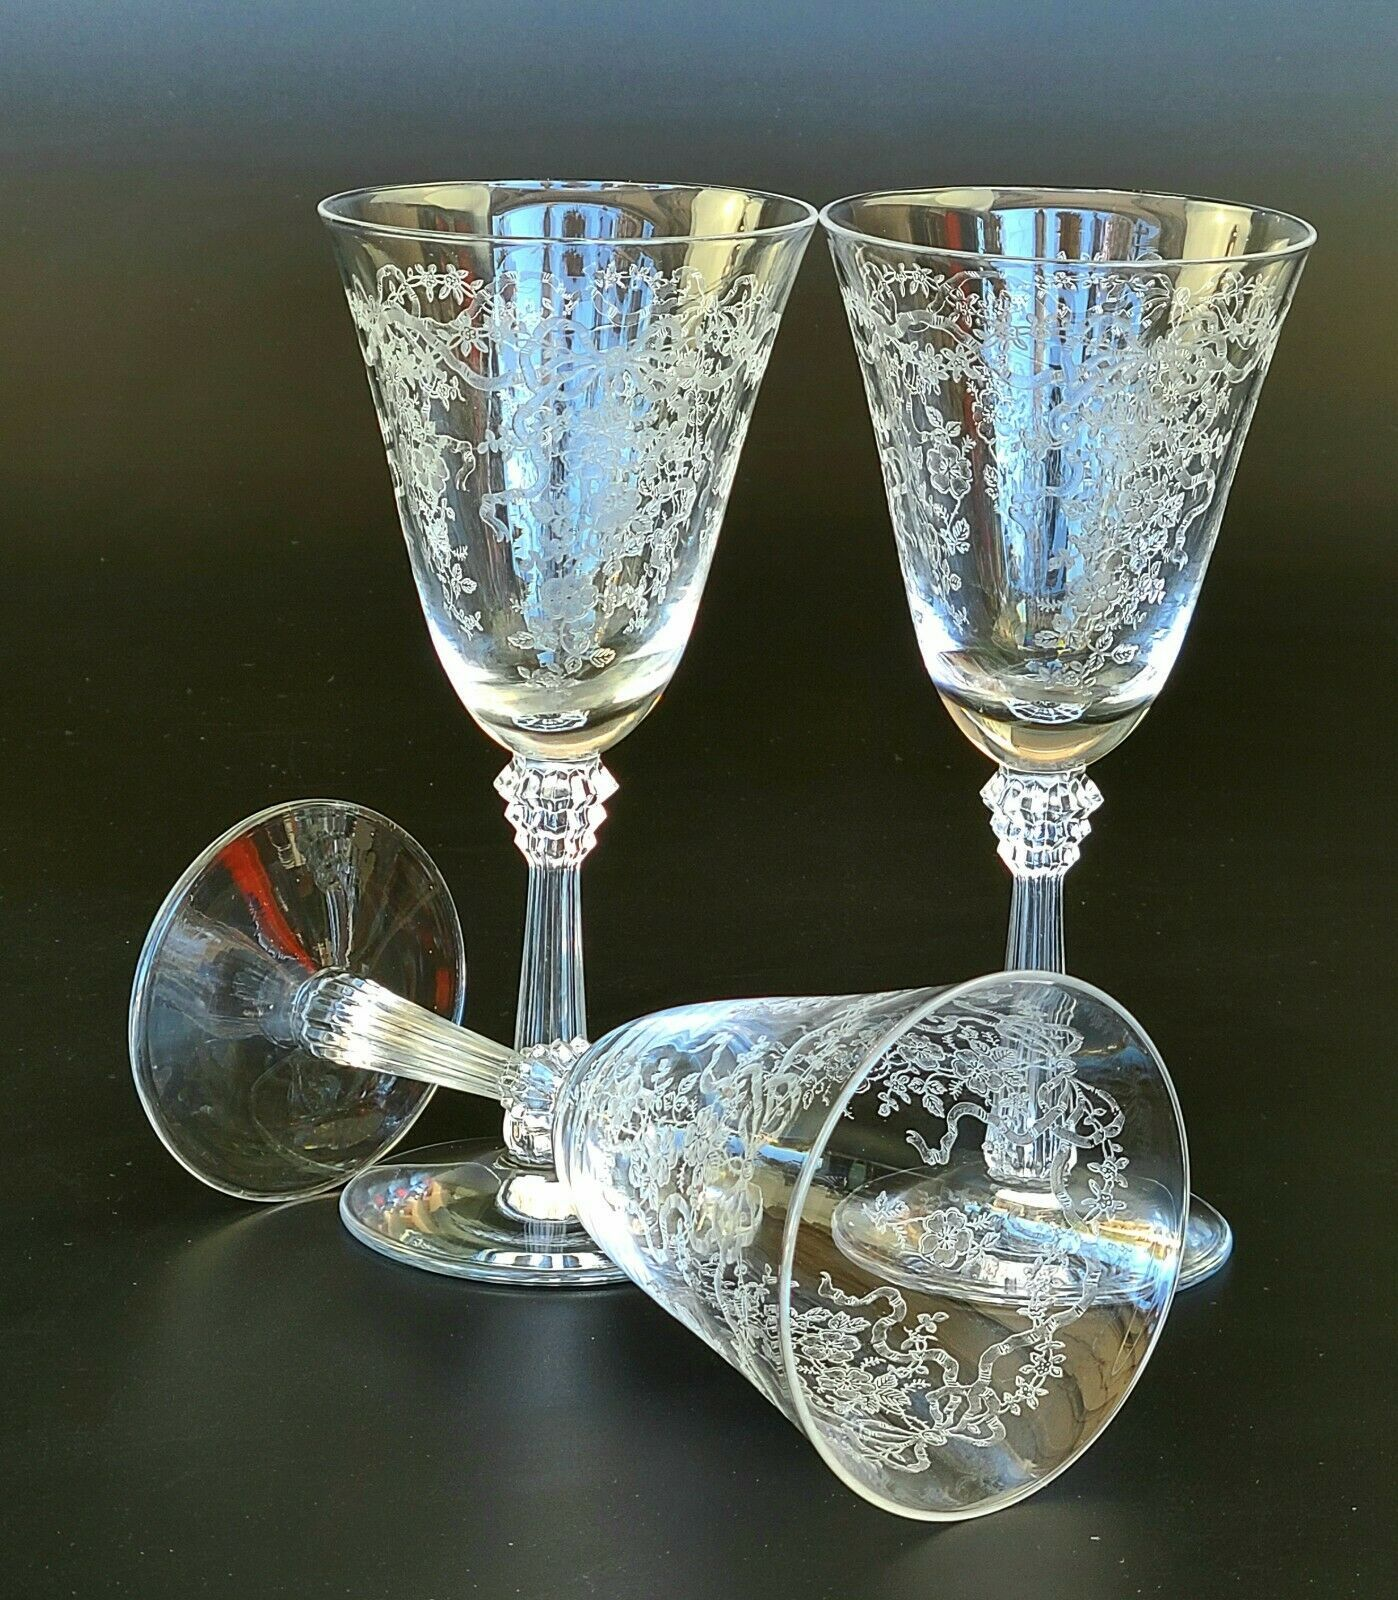 Primary image for Vintage Romance by Fostoria - Claret Wine Glasses - Set of 3